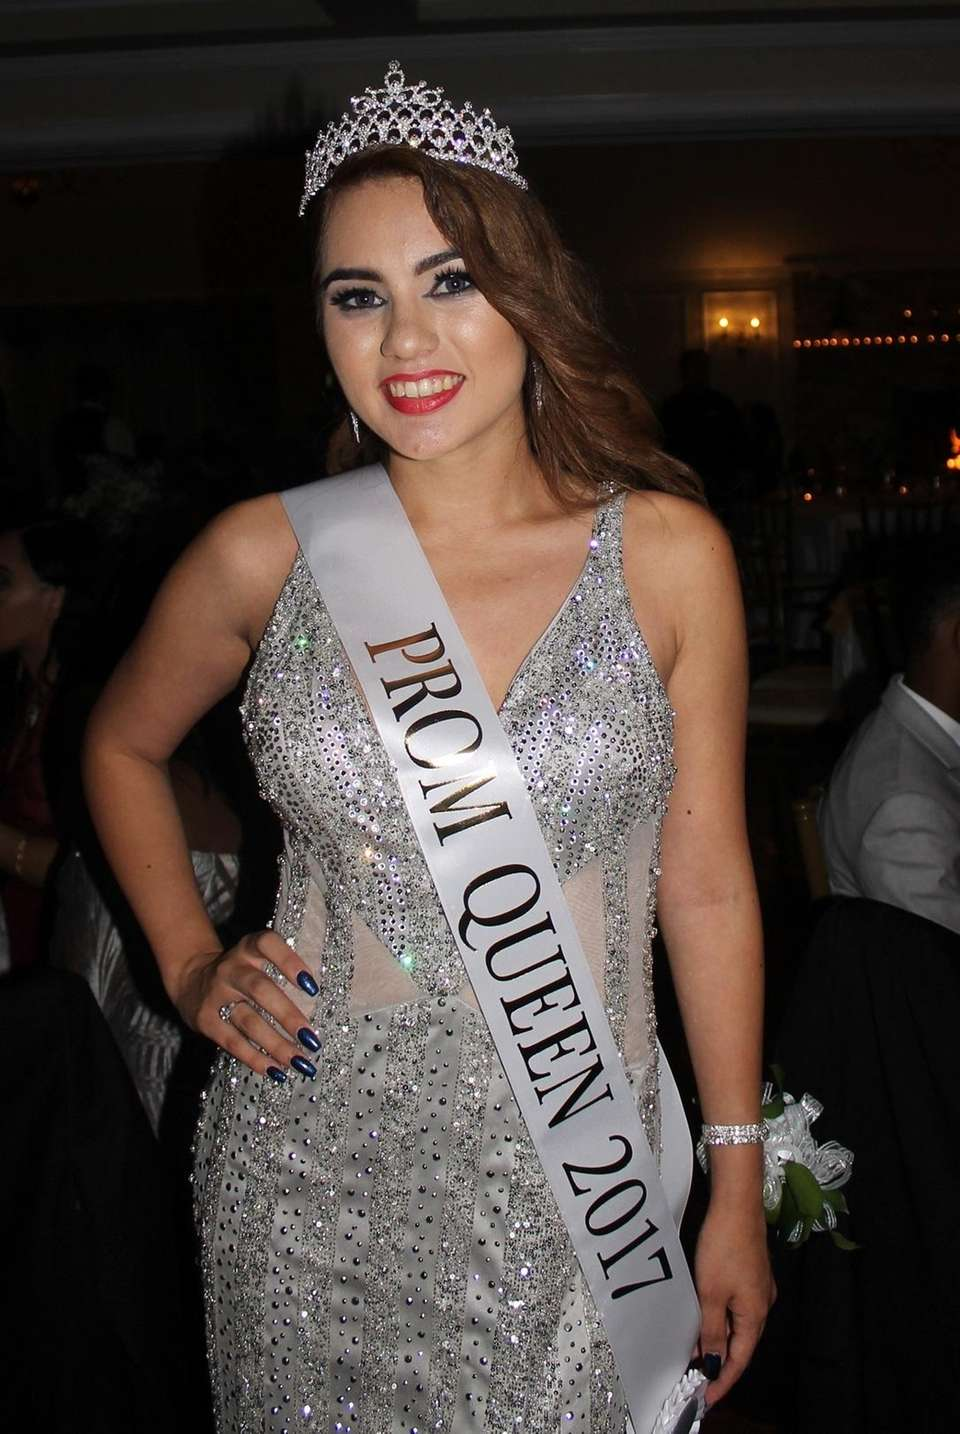 Copiague High School senior Hanan Ismail is crowned